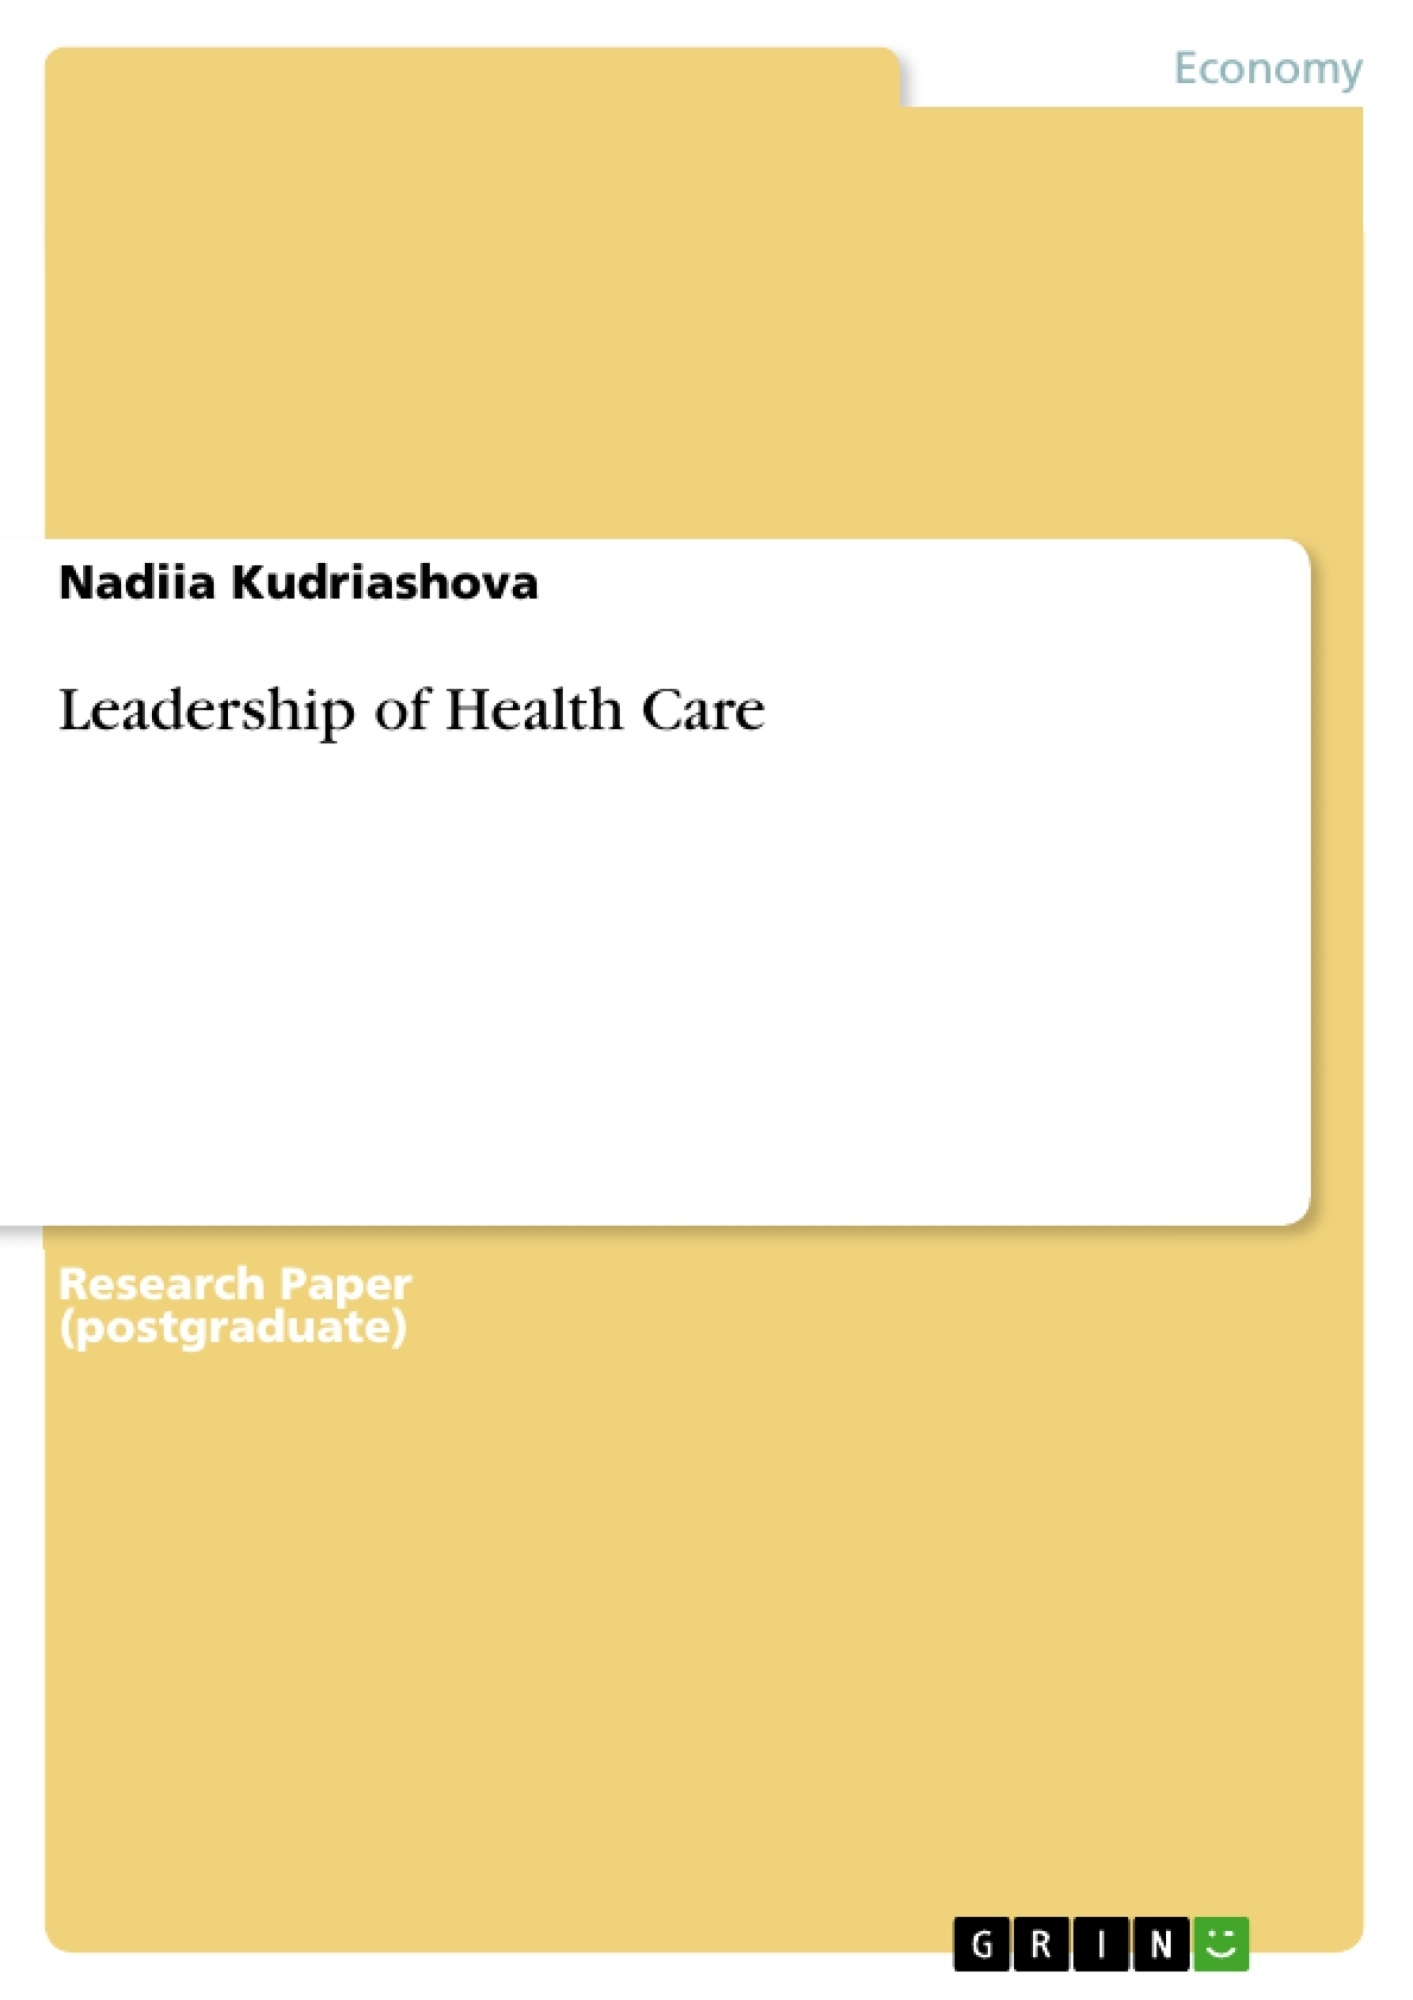 Title: Leadership of Health Care